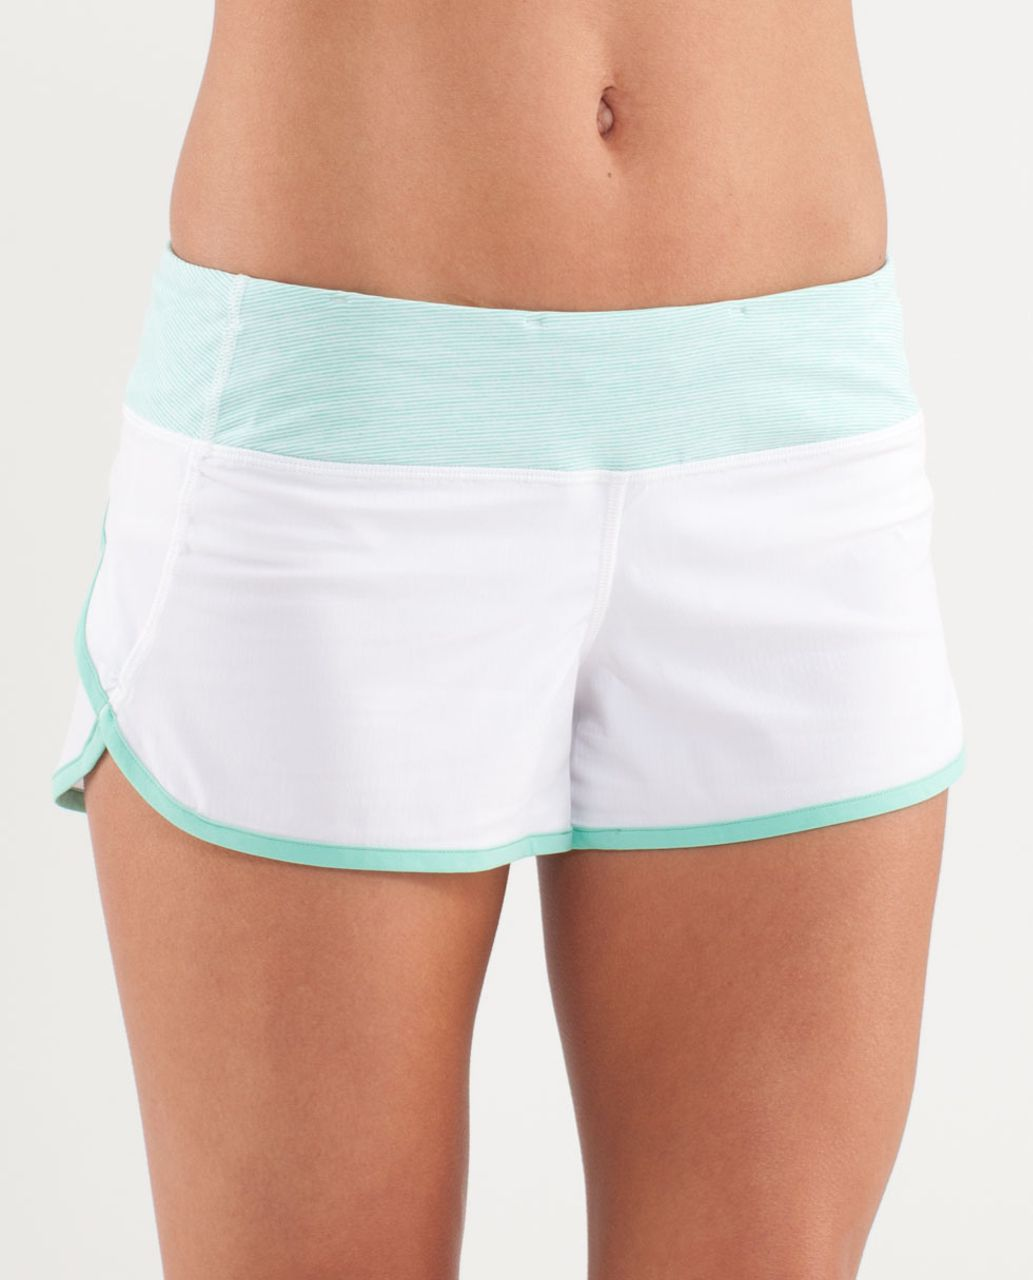 Lululemon Run:  Speed Short - White / Wee Stripe White Menthol / Menthol